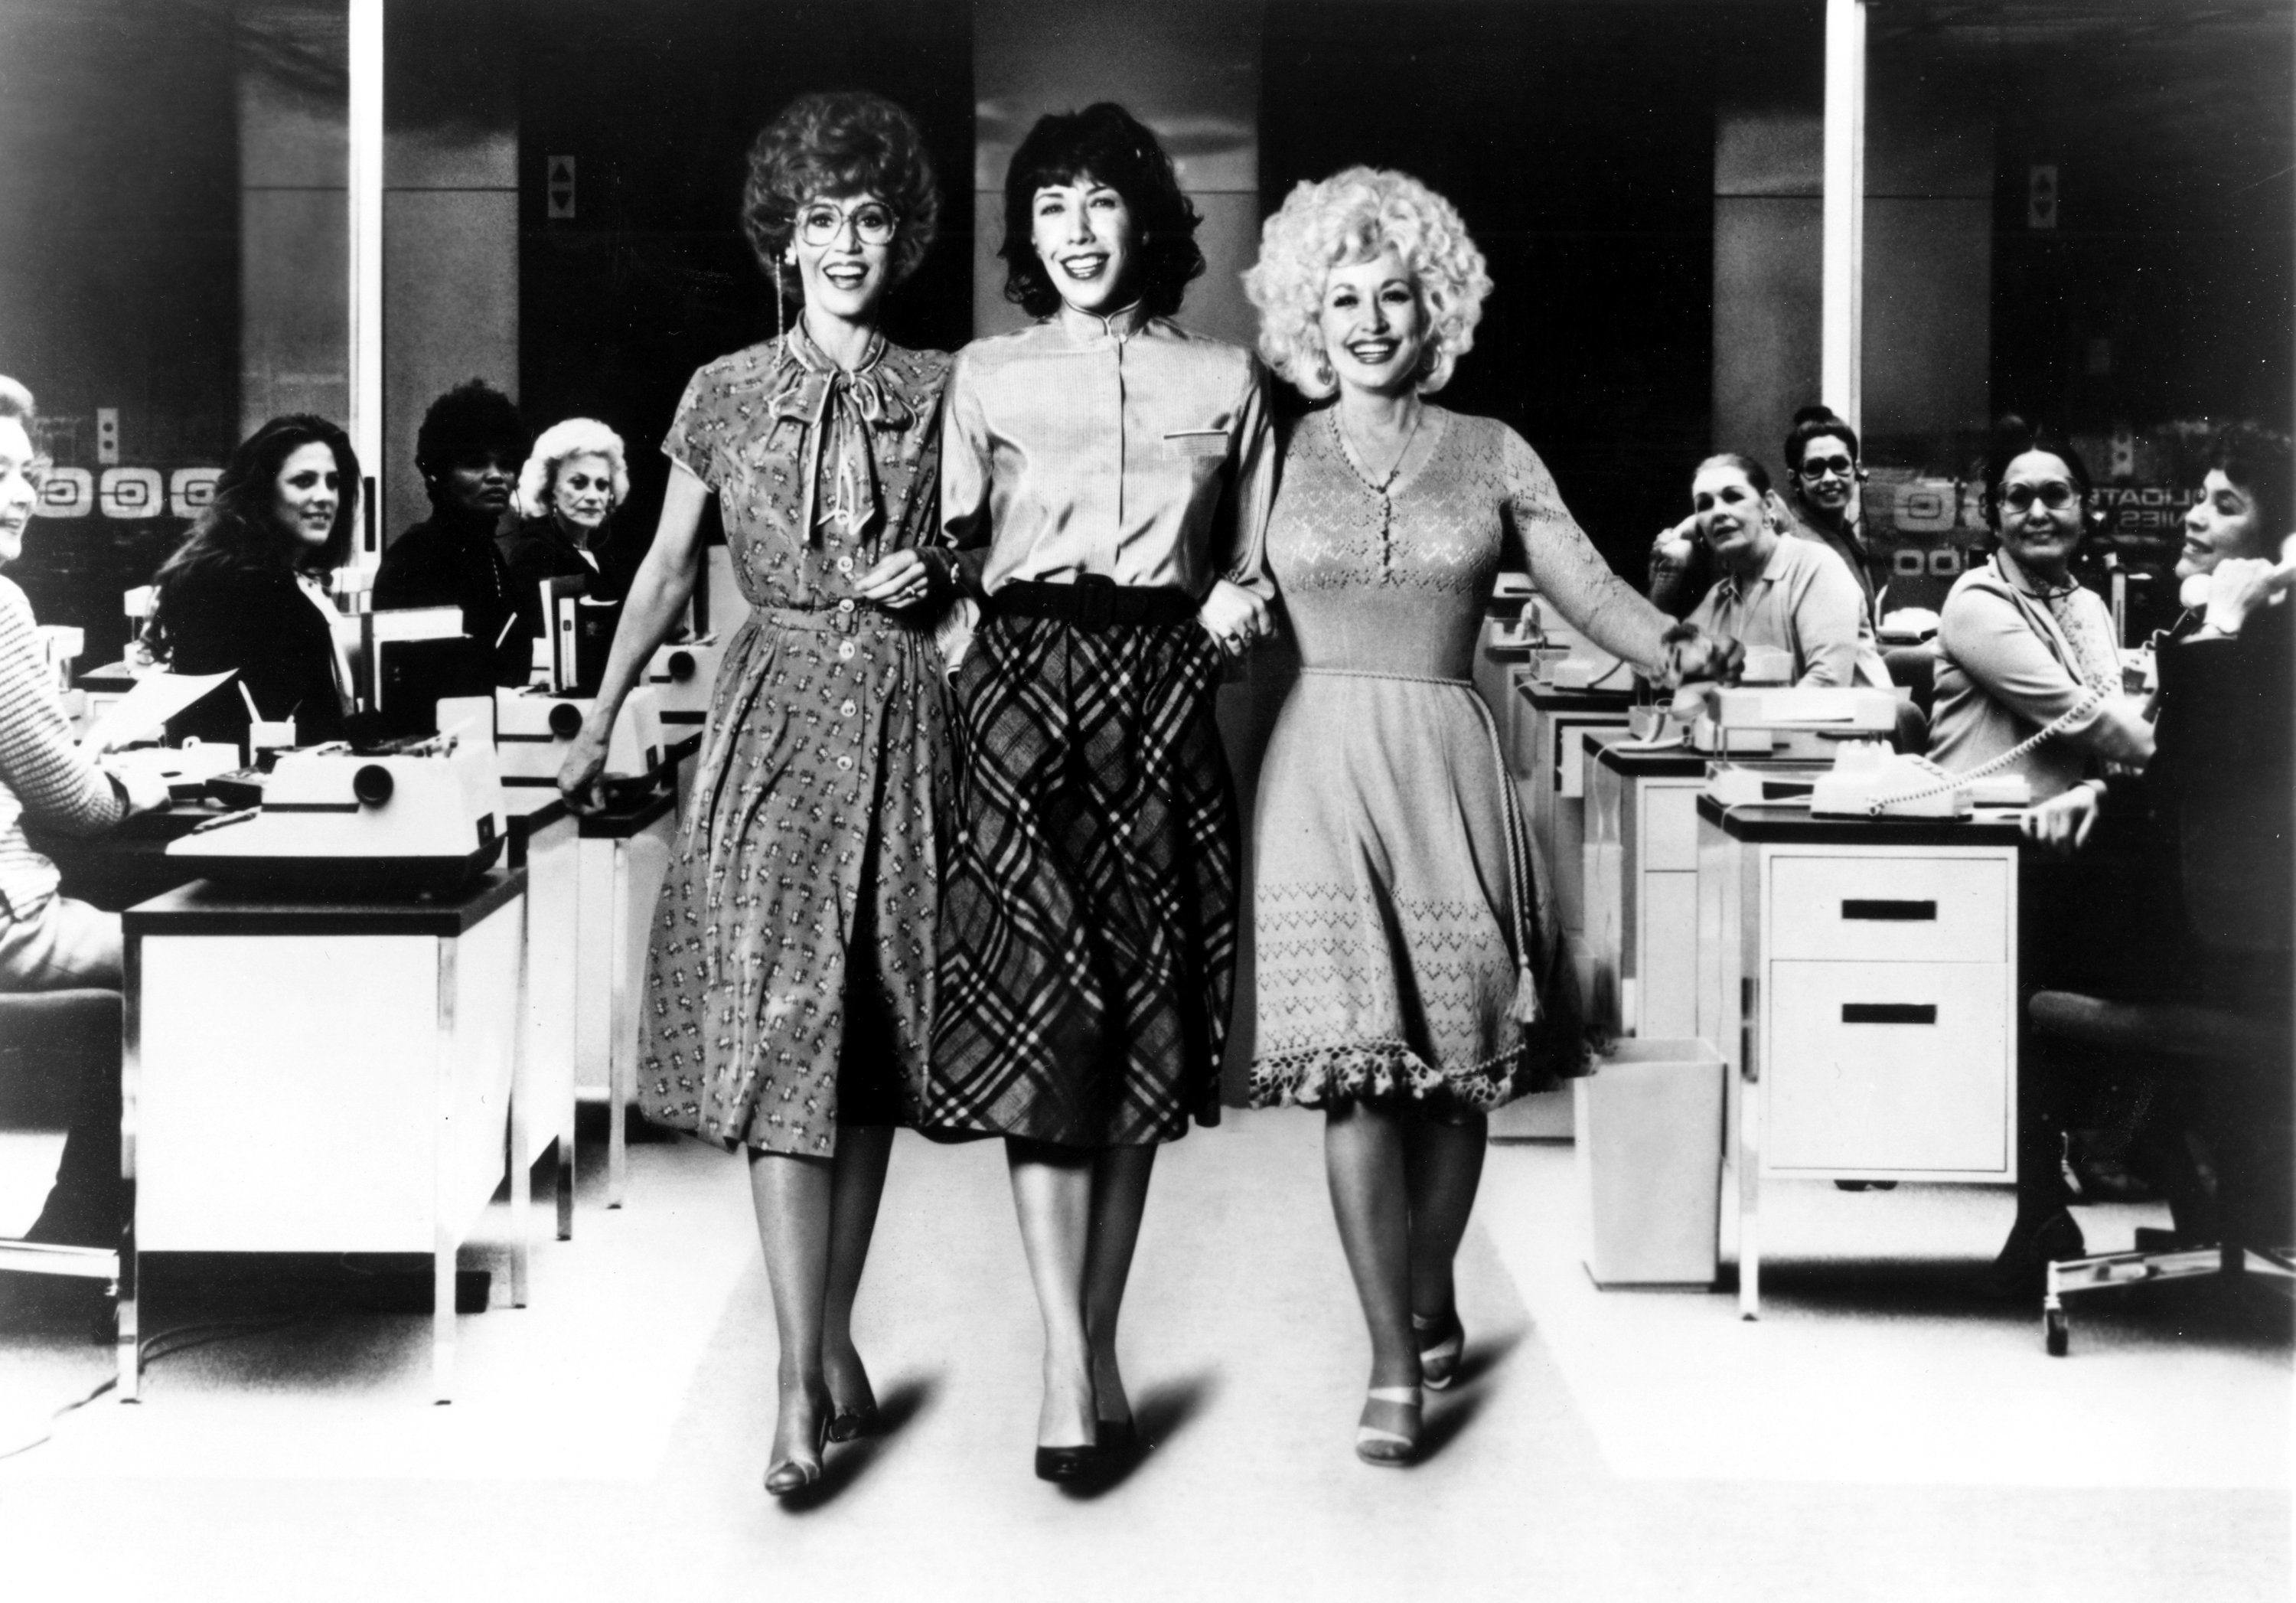 Jane Fonda Says A '9 To 5' Sequel With Dolly Parton, Lily Tomlin Is In The